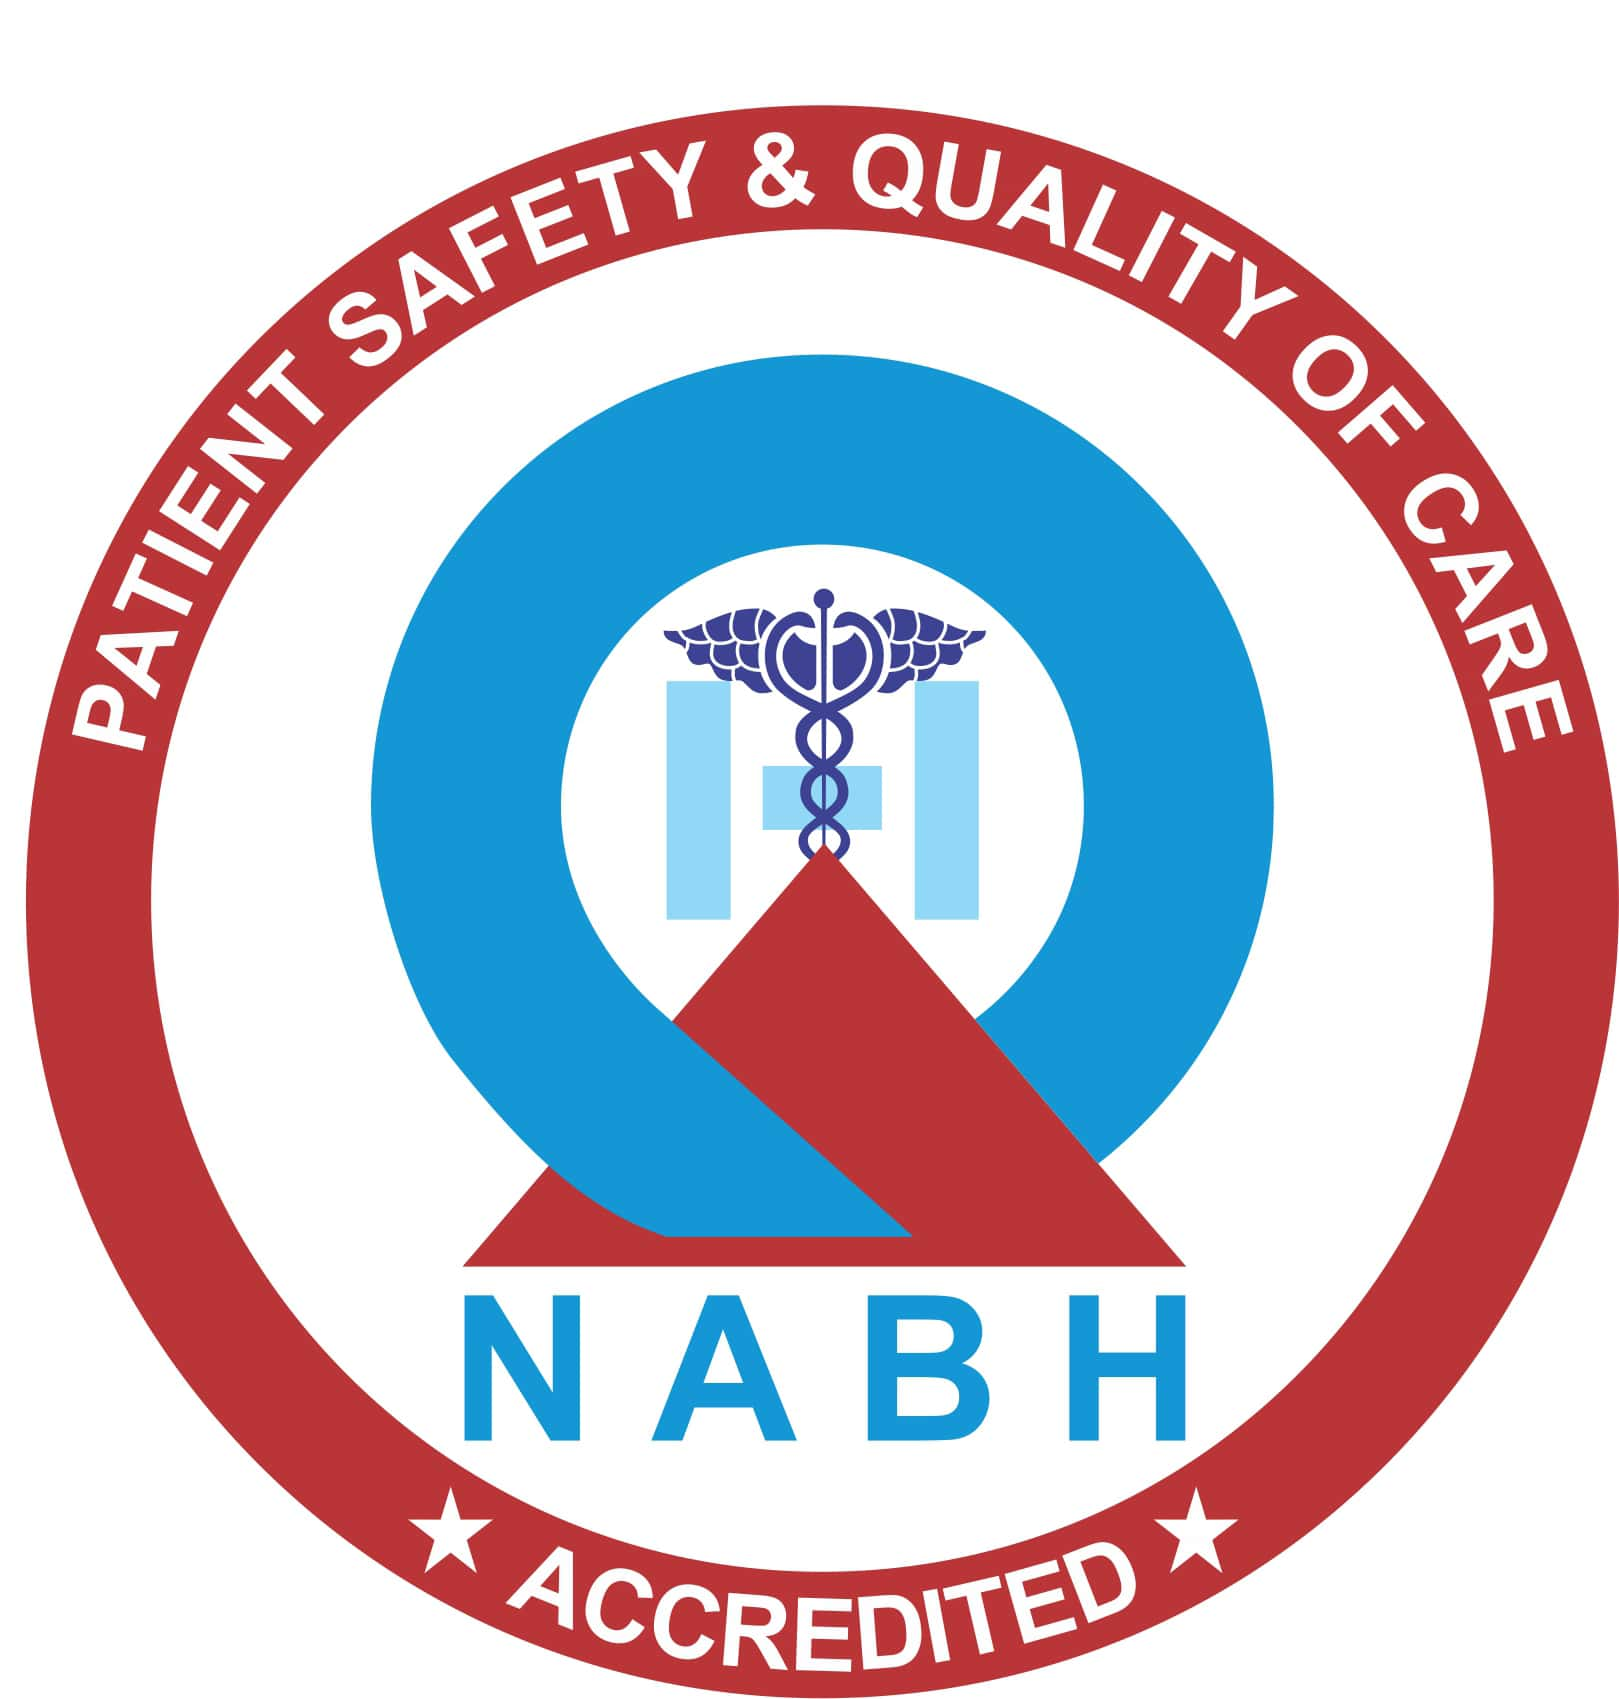 Accreditation NABH - Quality Control of Govt. of India